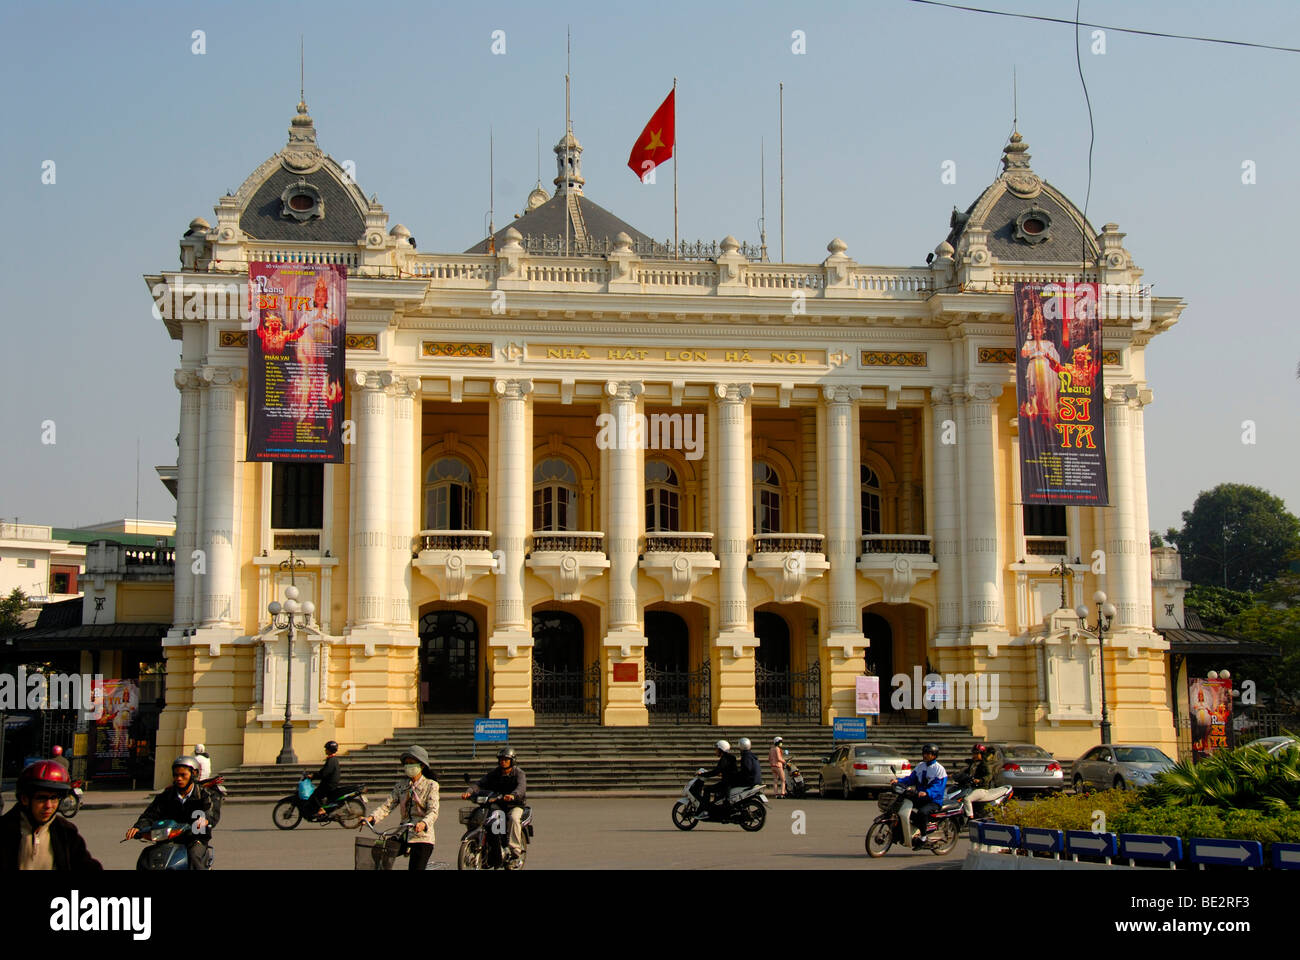 Opera House, Neoclassicism, transport, mopeds, Hanoi, Vietnam, Southeast Asia, Asia - Stock Image